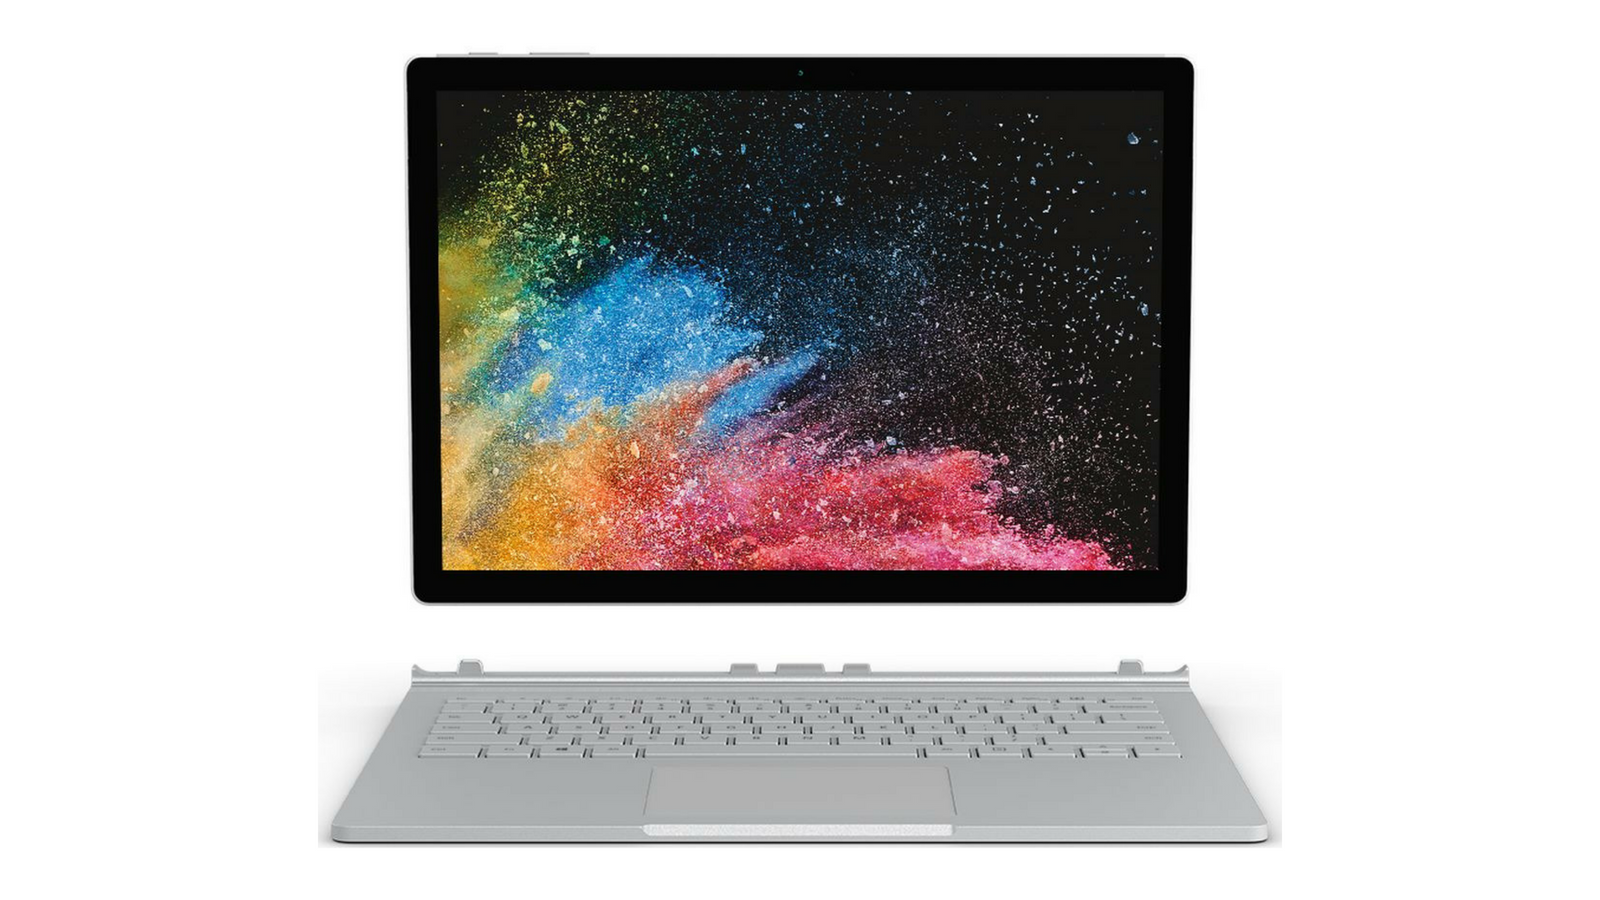 The Microsoft Surface Book 2 is at its lowest ever price